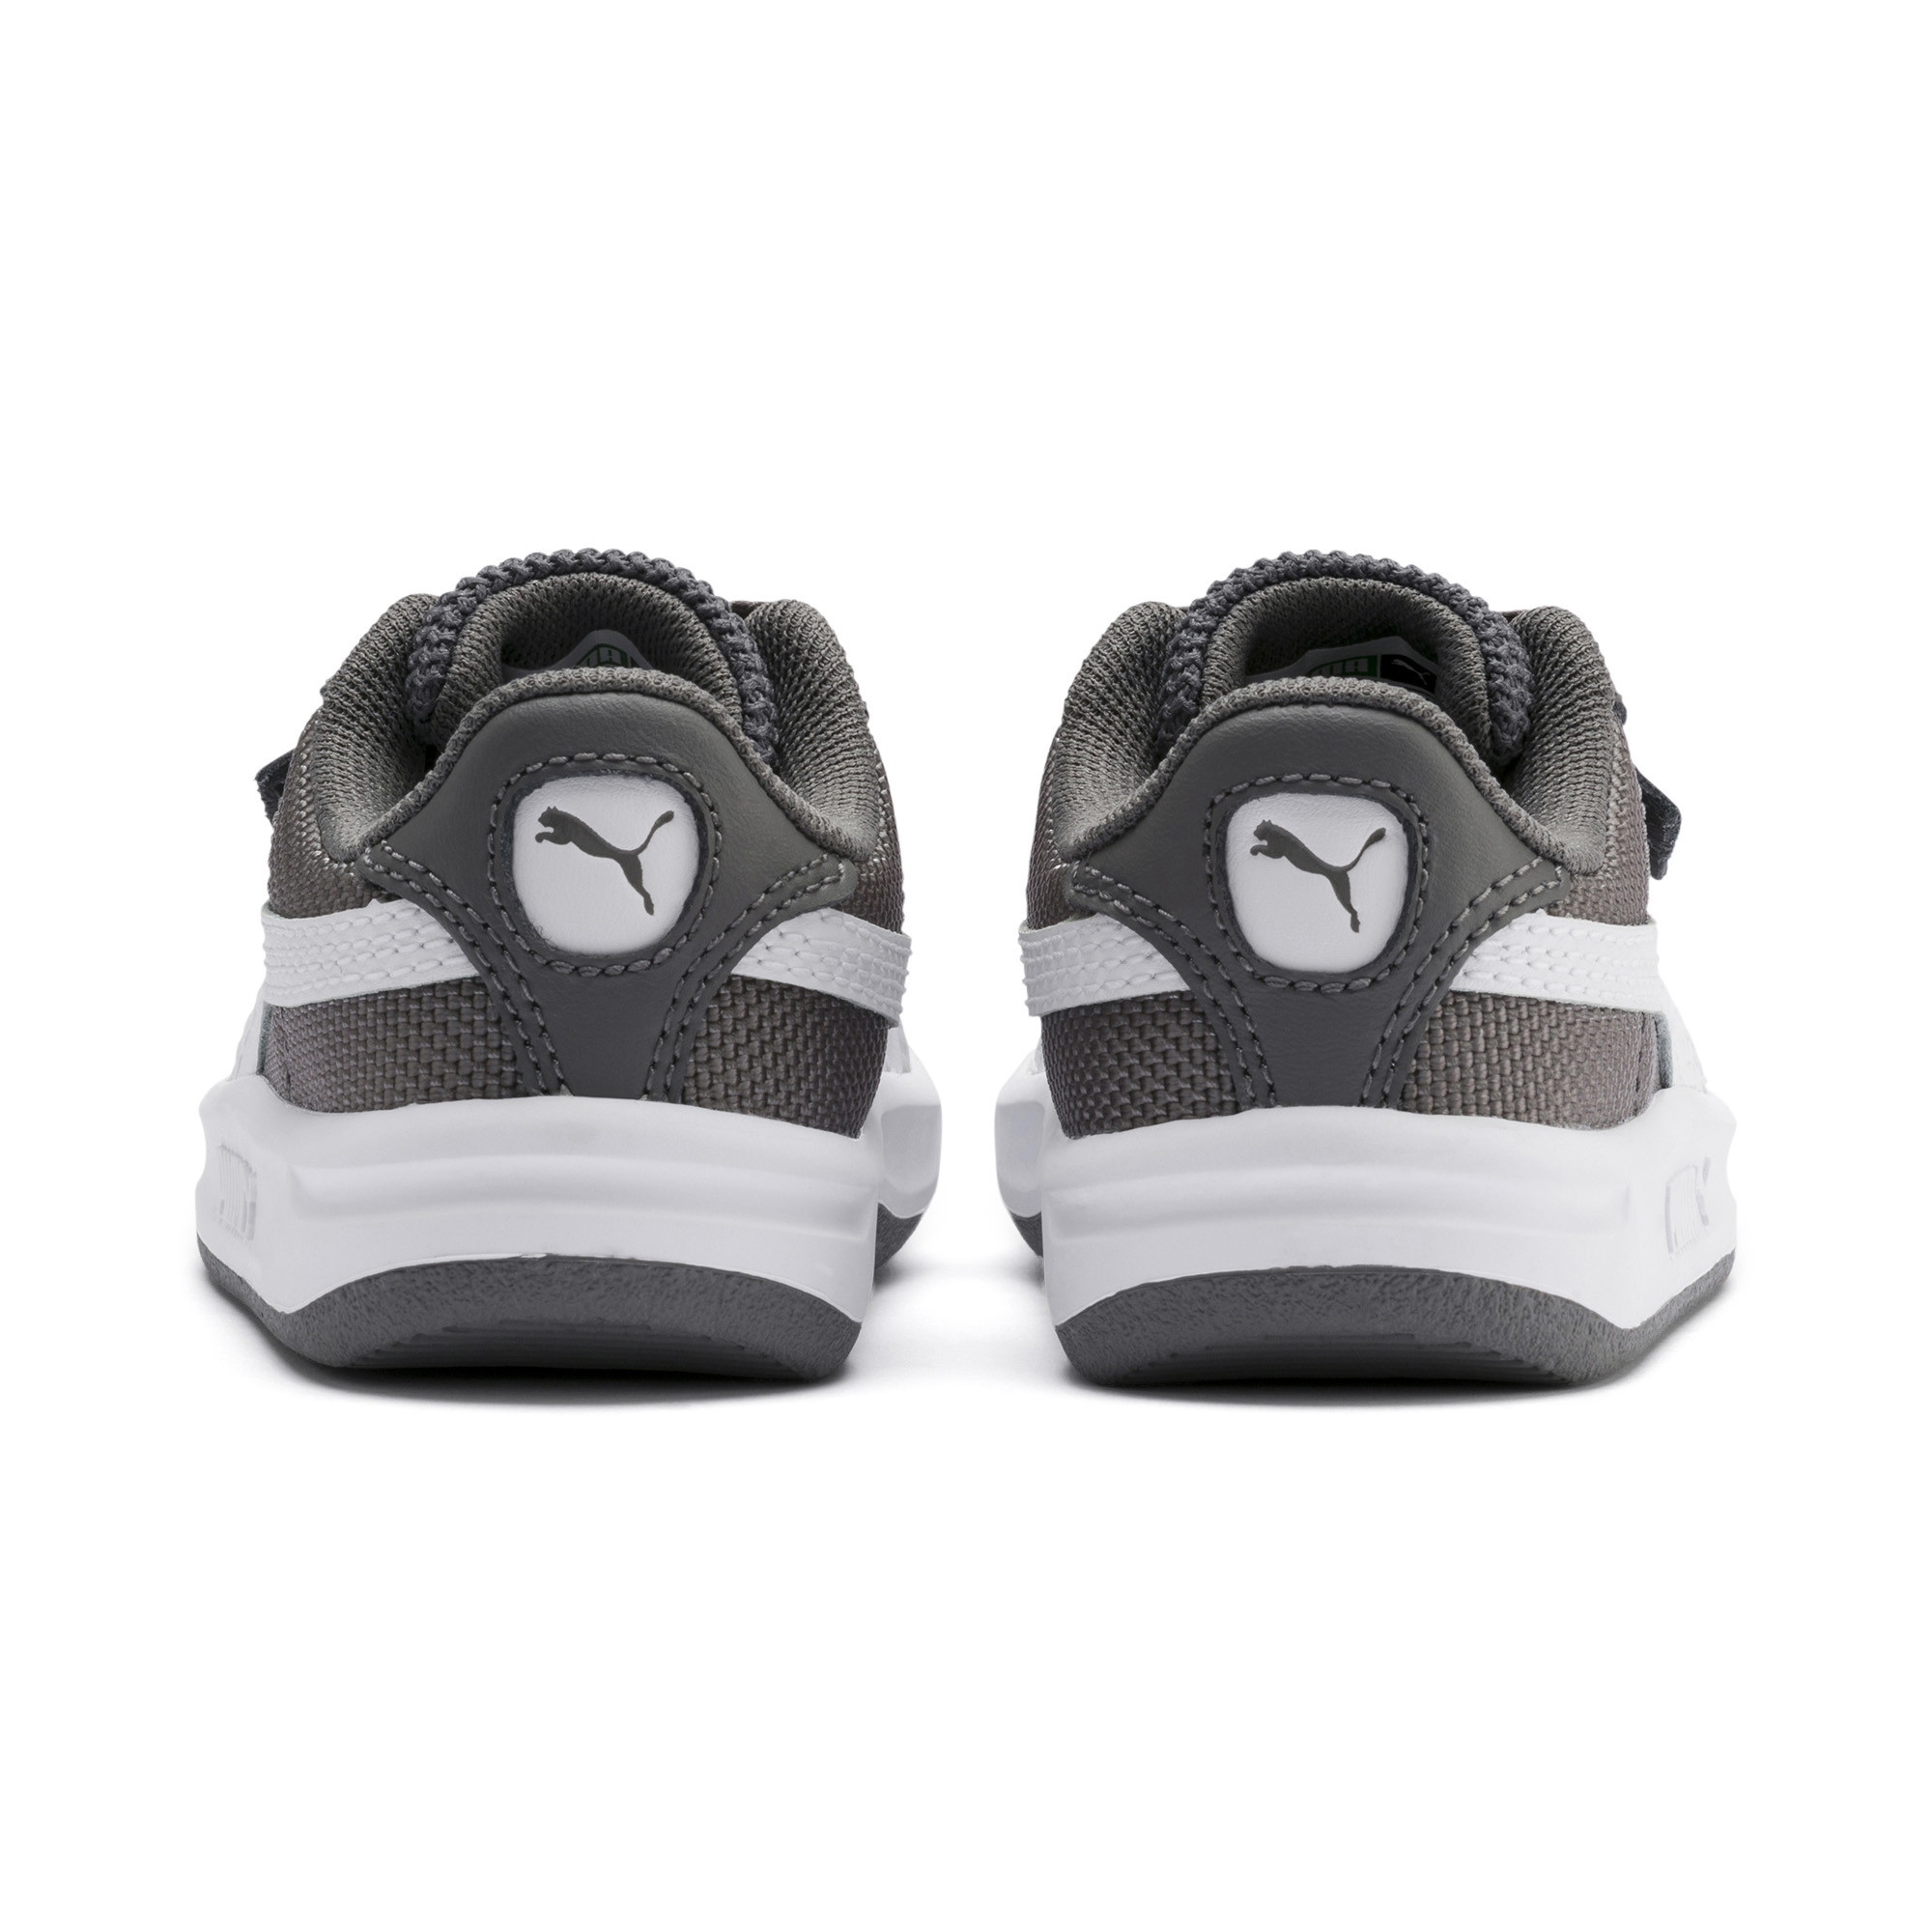 PUMA-California-Toddler-Shoes-Kids-Shoe-Kids thumbnail 15